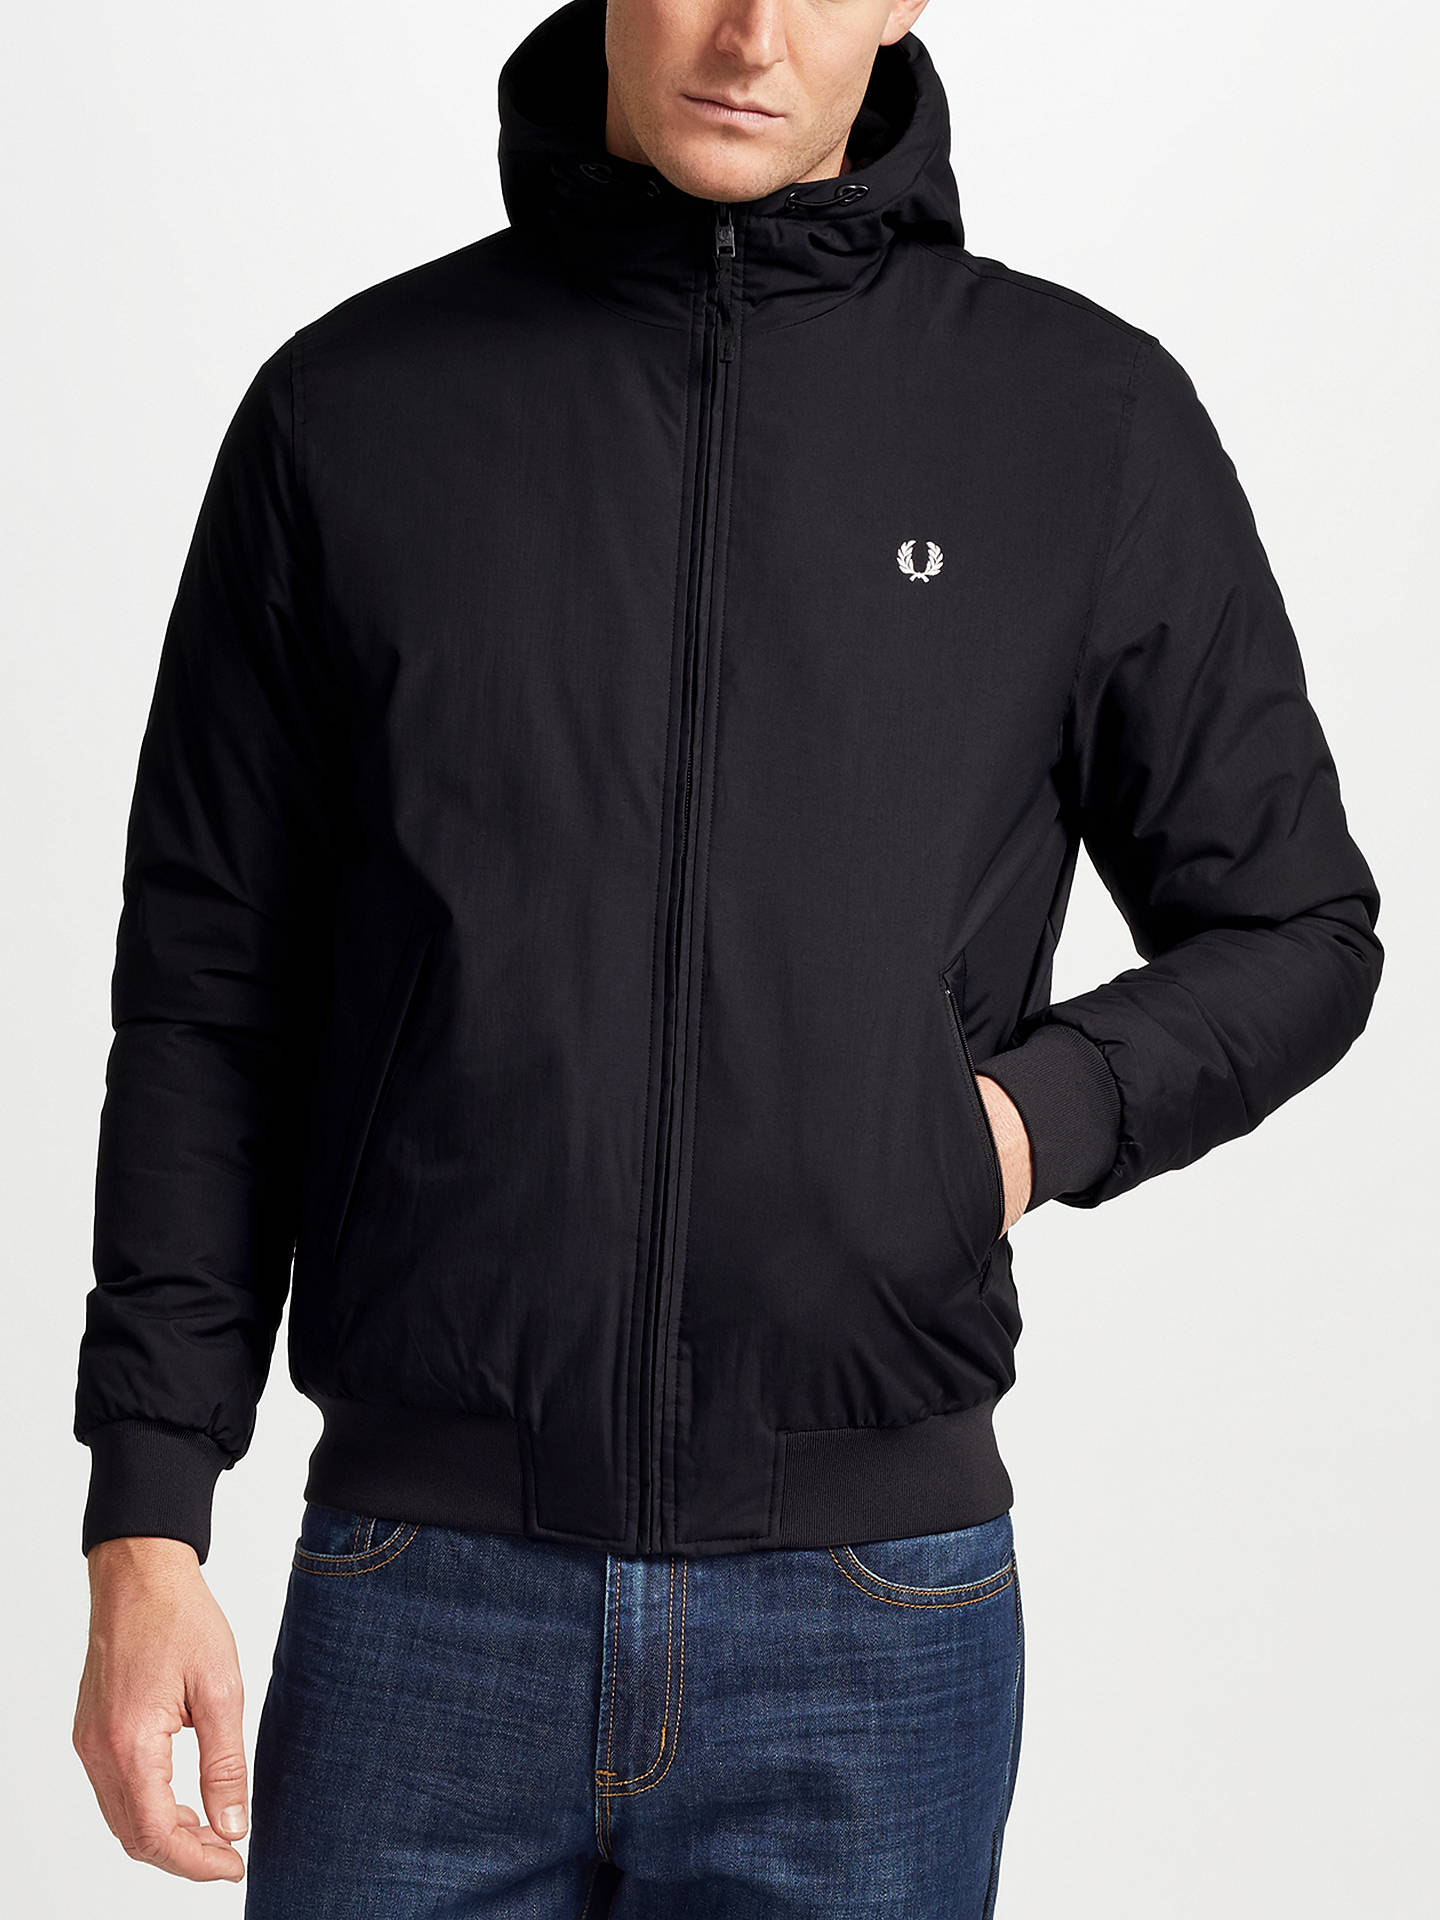 7c9f96c6f Fred Perry Brentham Jacket at John Lewis & Partners